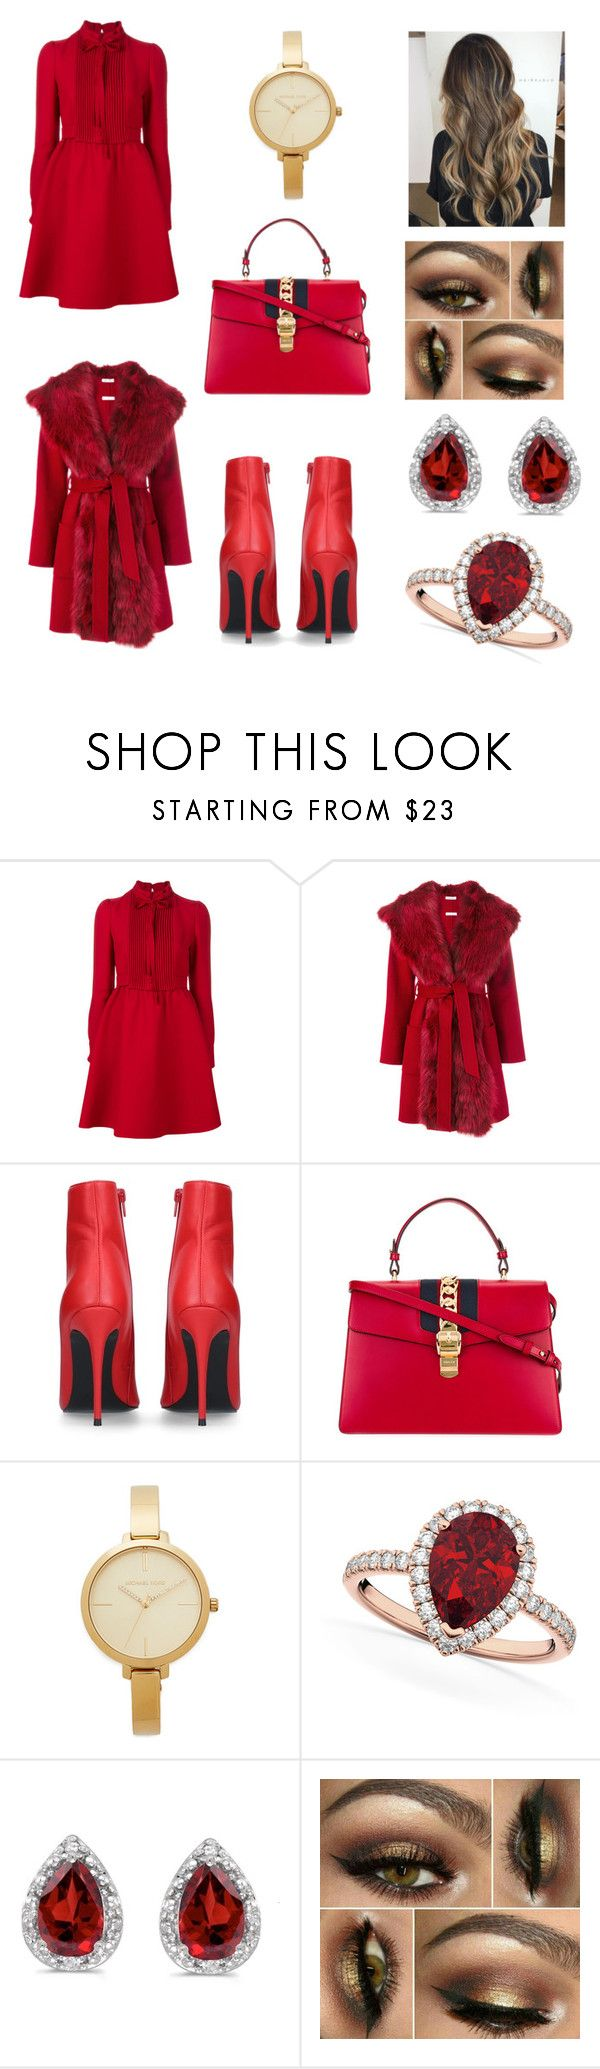 """""""Fall Trend - Lady In Red ❤️"""" by anca2 ❤ liked on Polyvore featuring Valentino, P.A.R.O.S.H., Kurt Geiger, Gucci, Michael Kors, Allurez and Amanda Rose Collection"""